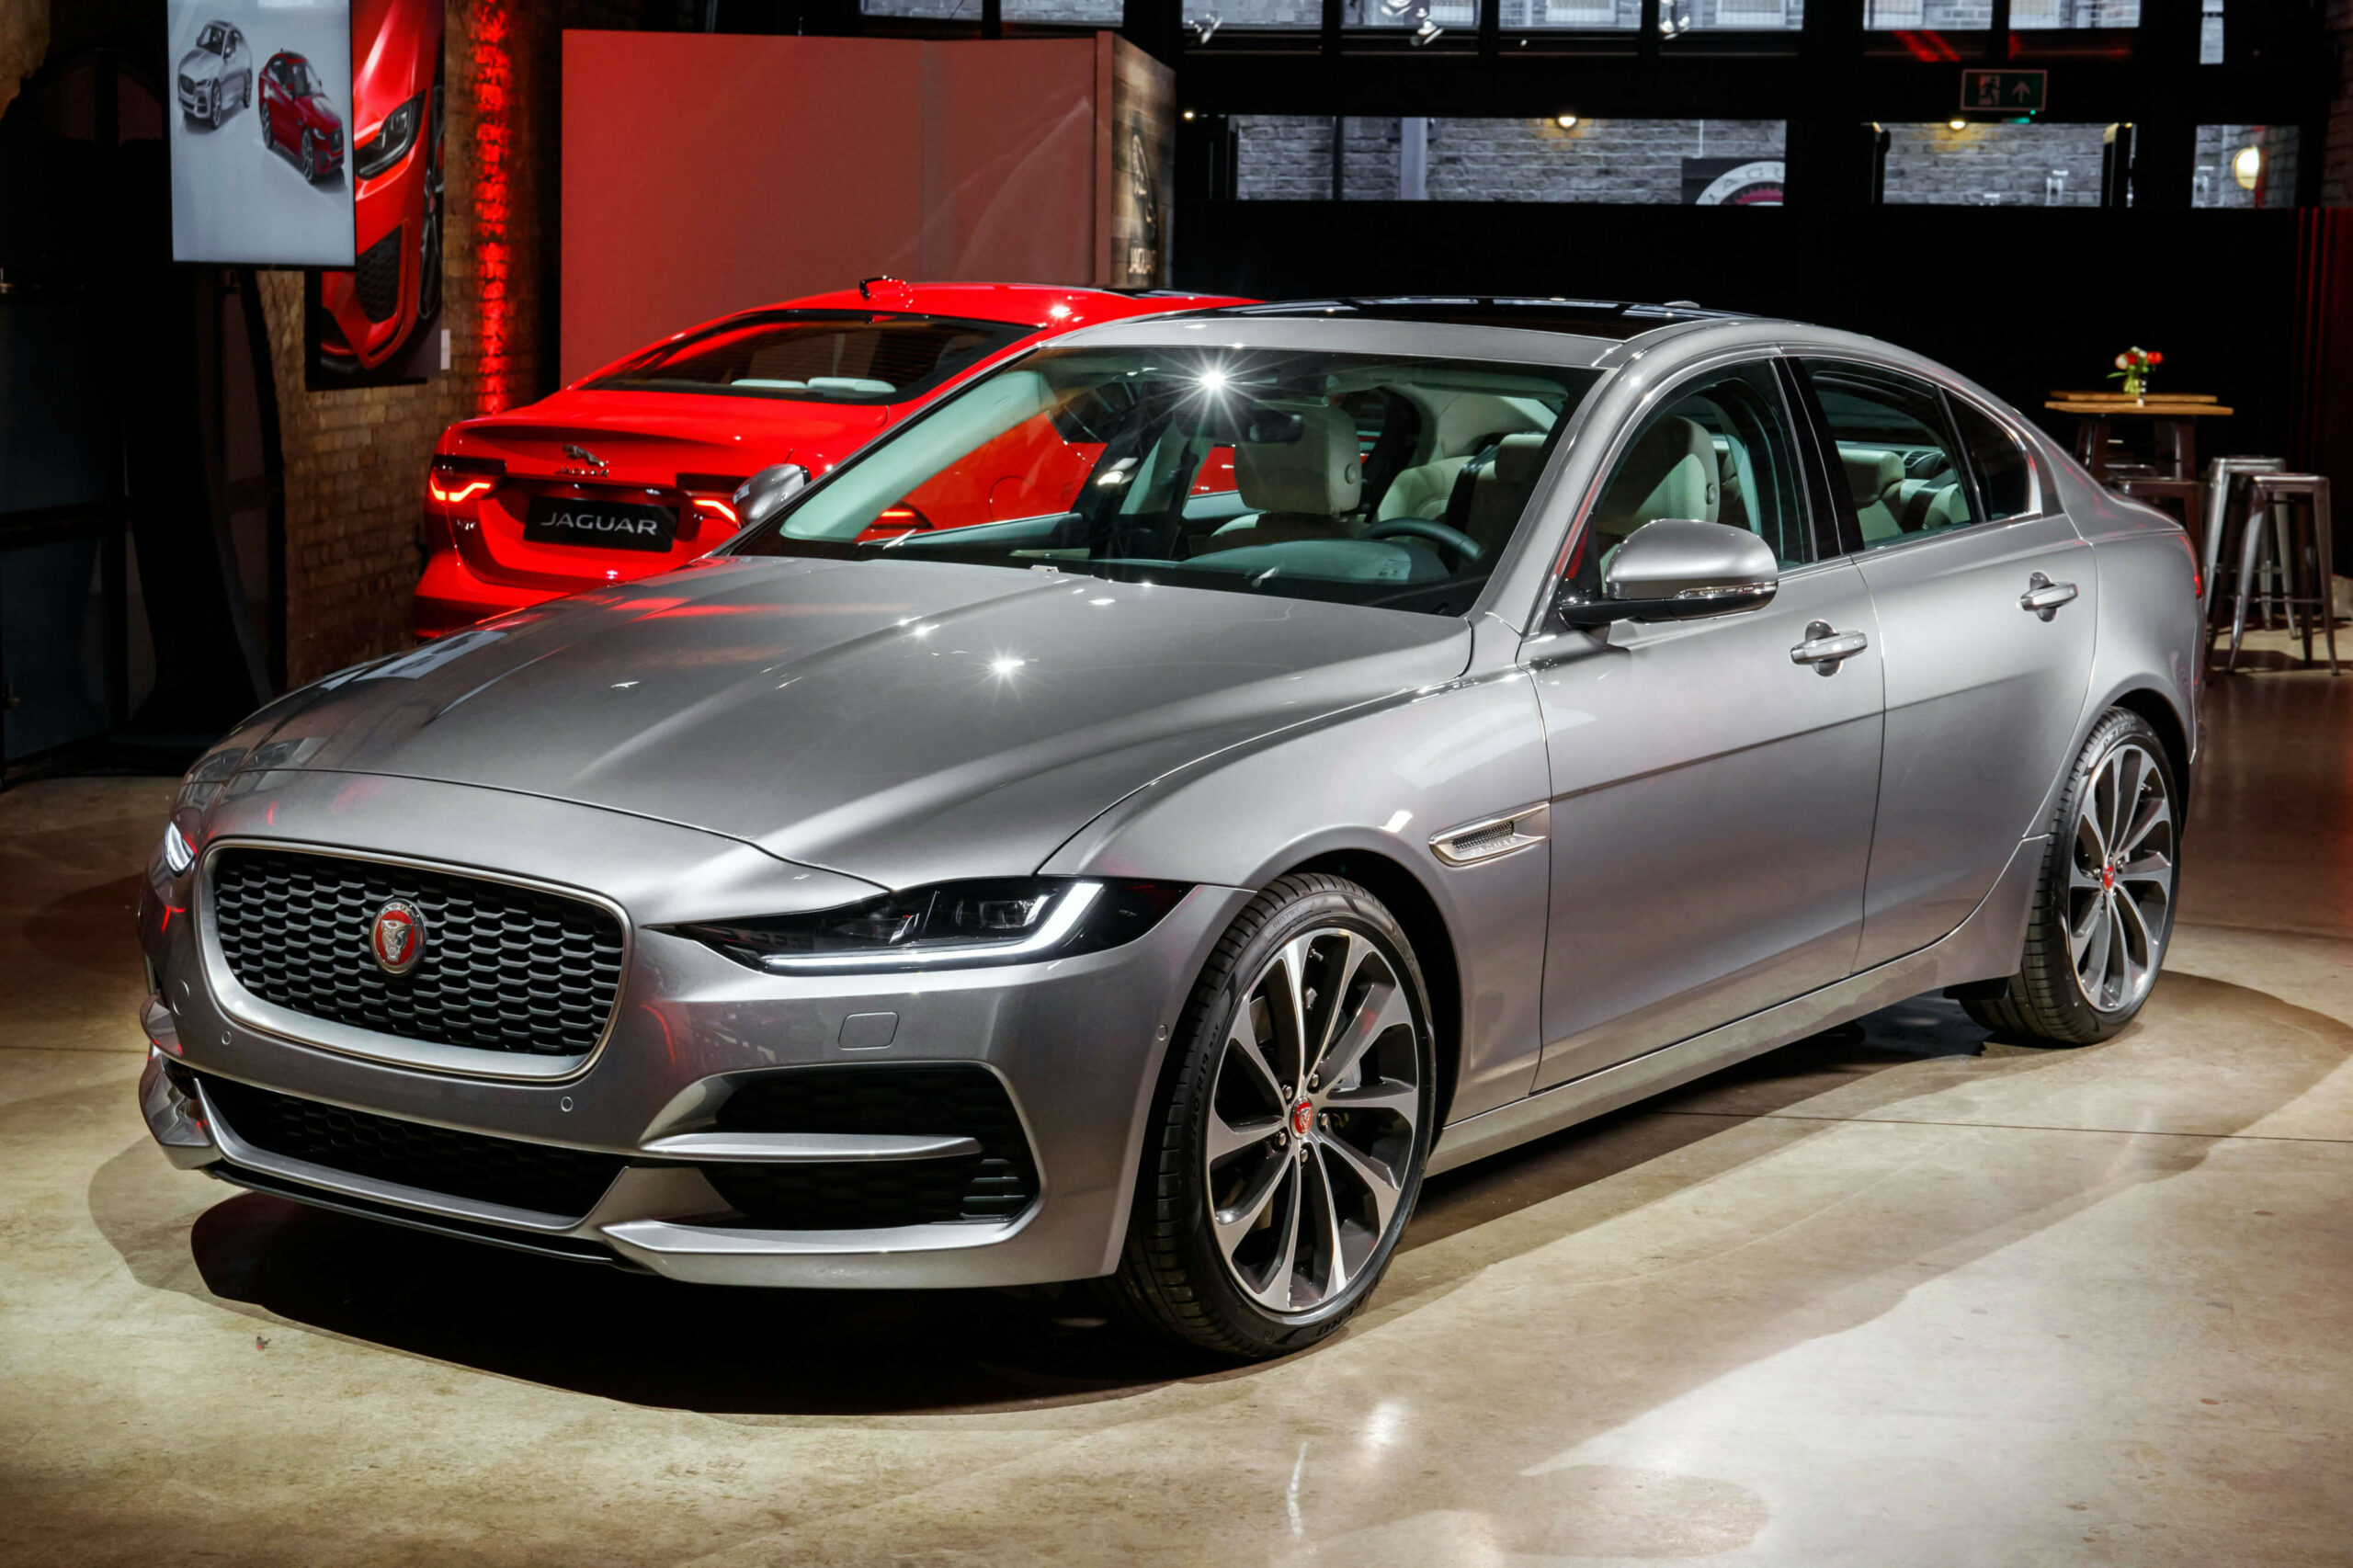 6 Jaguar XE: Facelift Sharpens Up British Sedan - AMENA Auto - jaguar 2020 uae